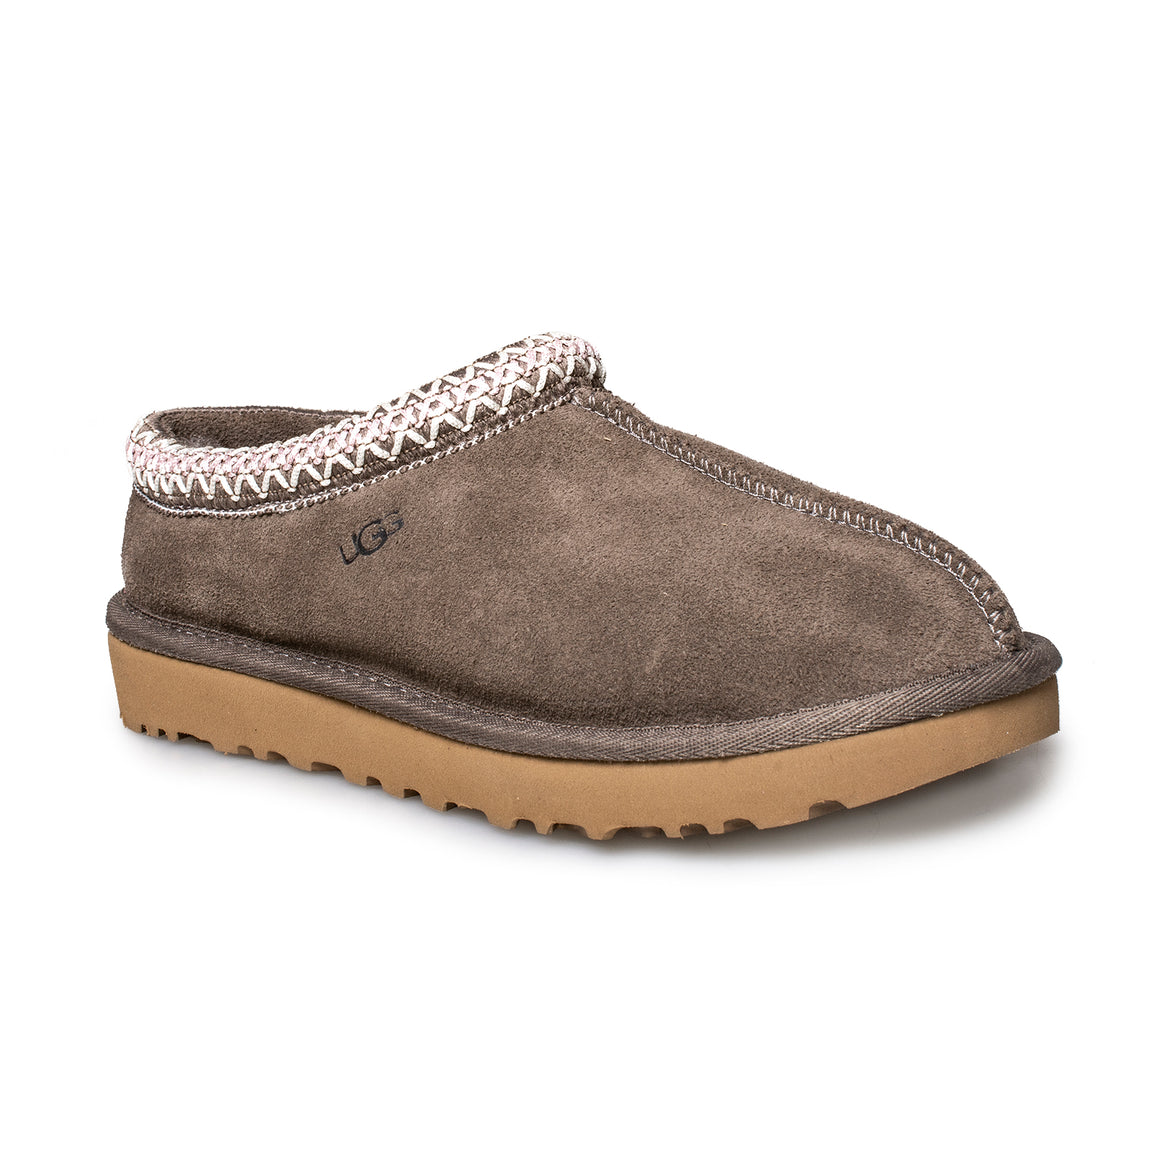 UGG Tasman Mole Slippers - Women's